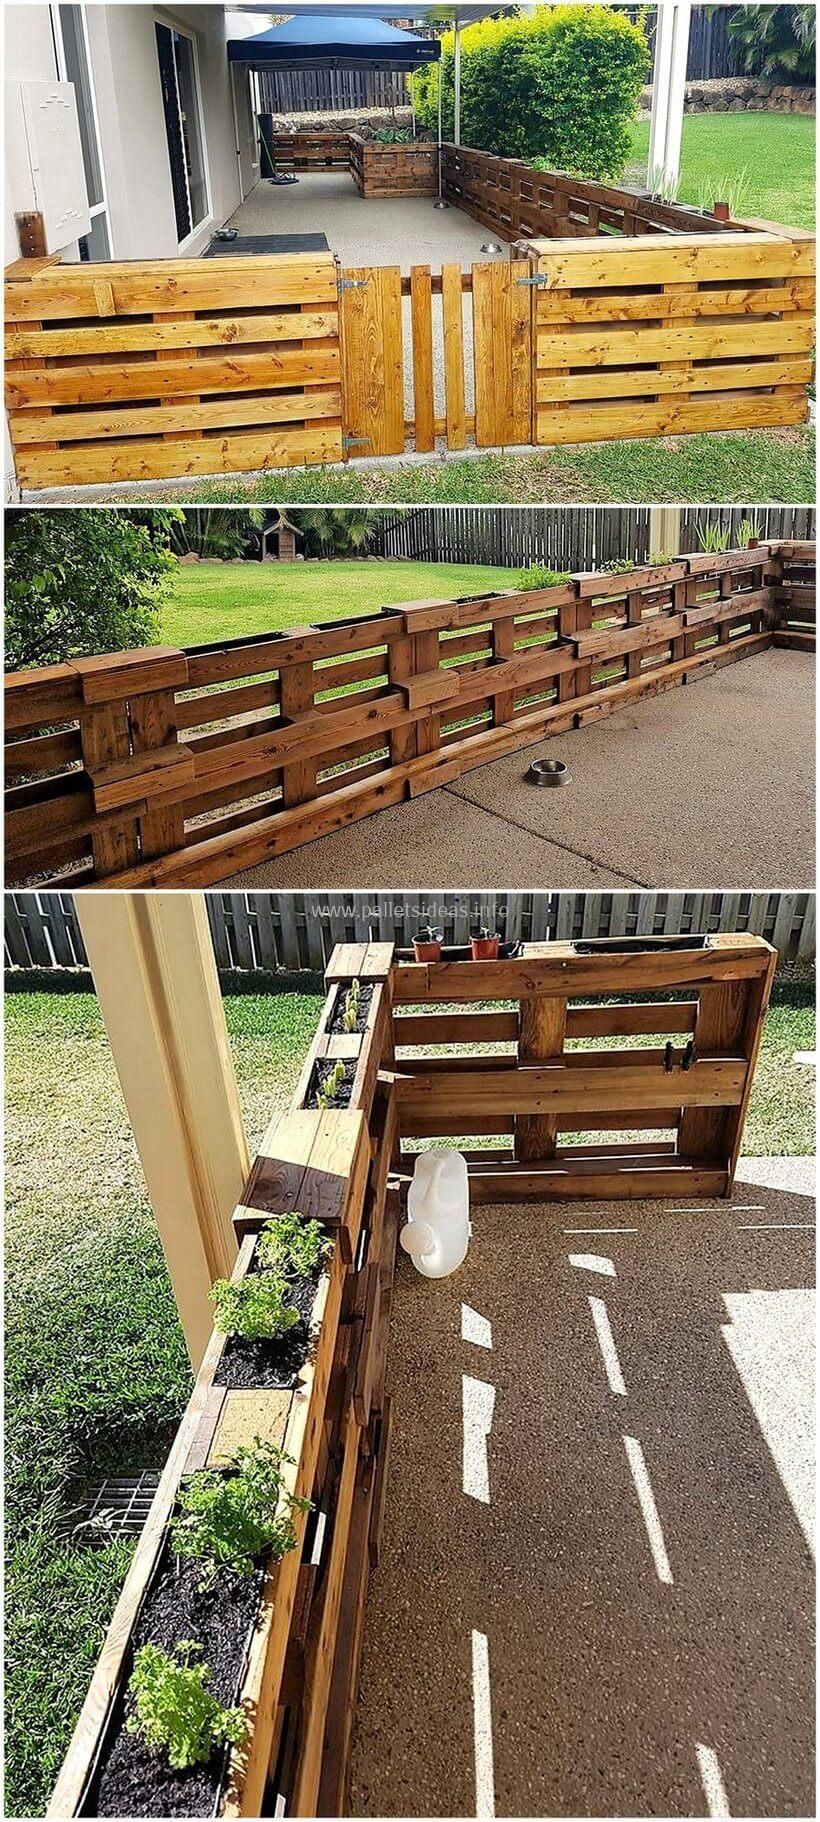 Creative Diy Ideas For Wood Pallet Recyling Projects Pallet